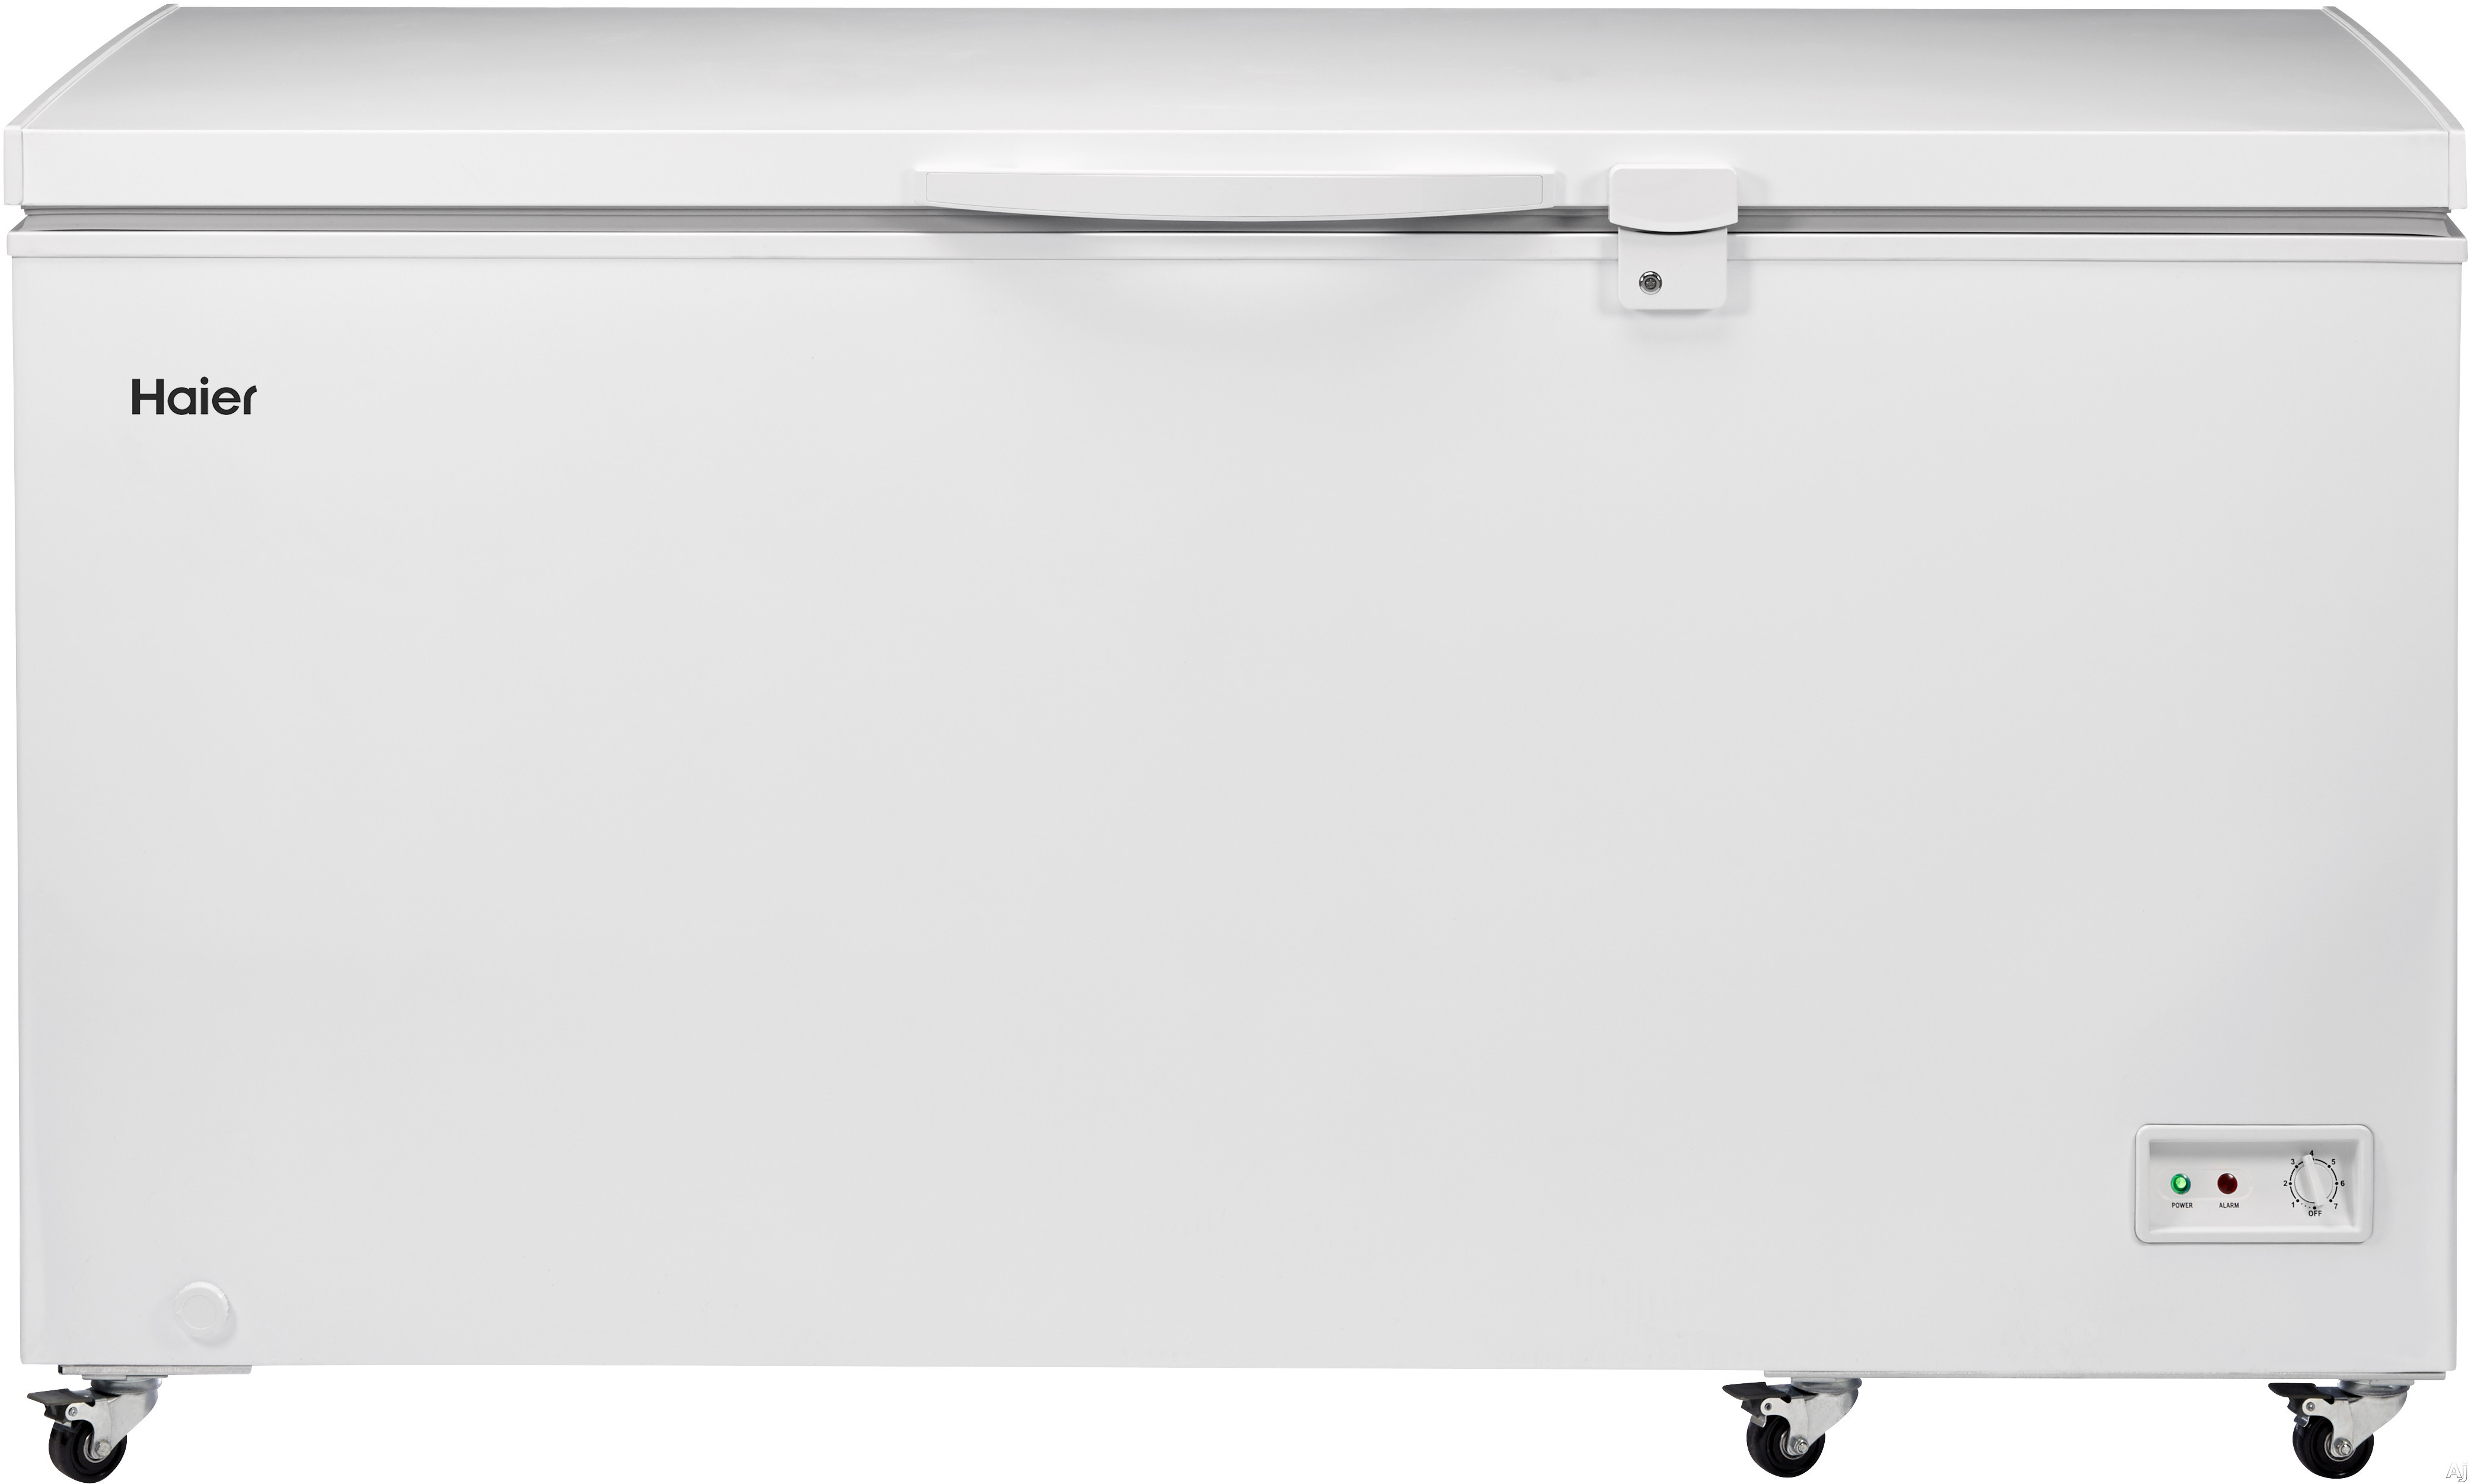 Image of Haier HFC1504ACW 60 1/2 Inch Chest Freezer with 14.5 Cu. Ft. Capacity, 2 Removable Baskets, Casters, Interior LED Lighting, Security Lock, High Temperature Indicator Light, Power On Indicator Light, Manual Defrost with Easy Access Defrost Drain and Space-